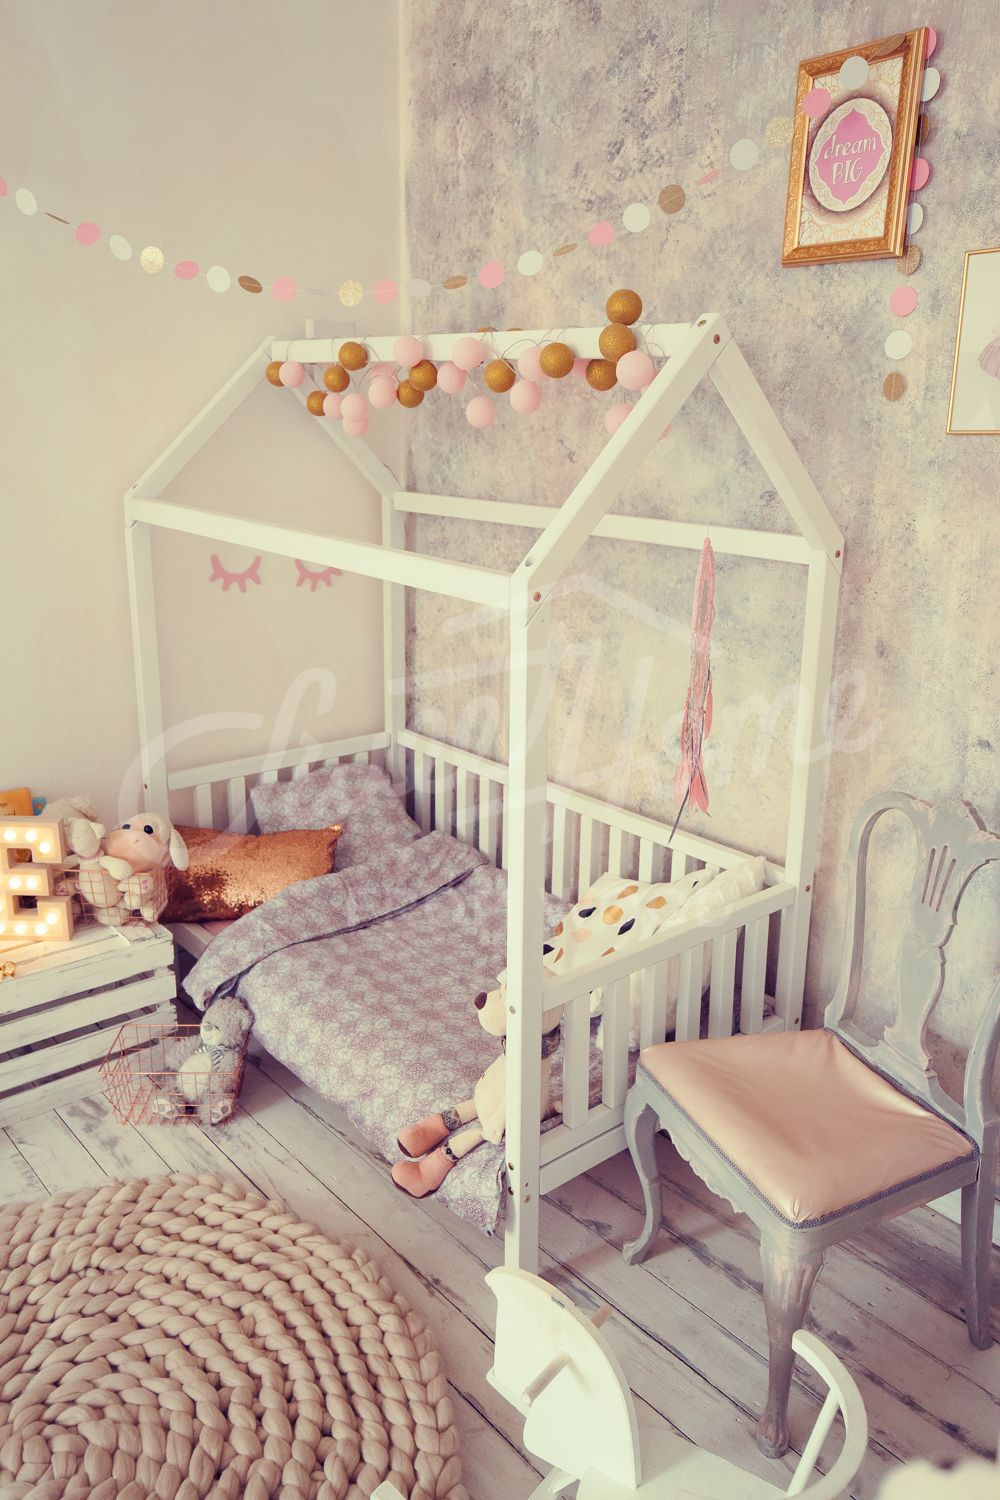 Baby Bed Toddler Bed Or Wood Bed House House Beds Pinterest